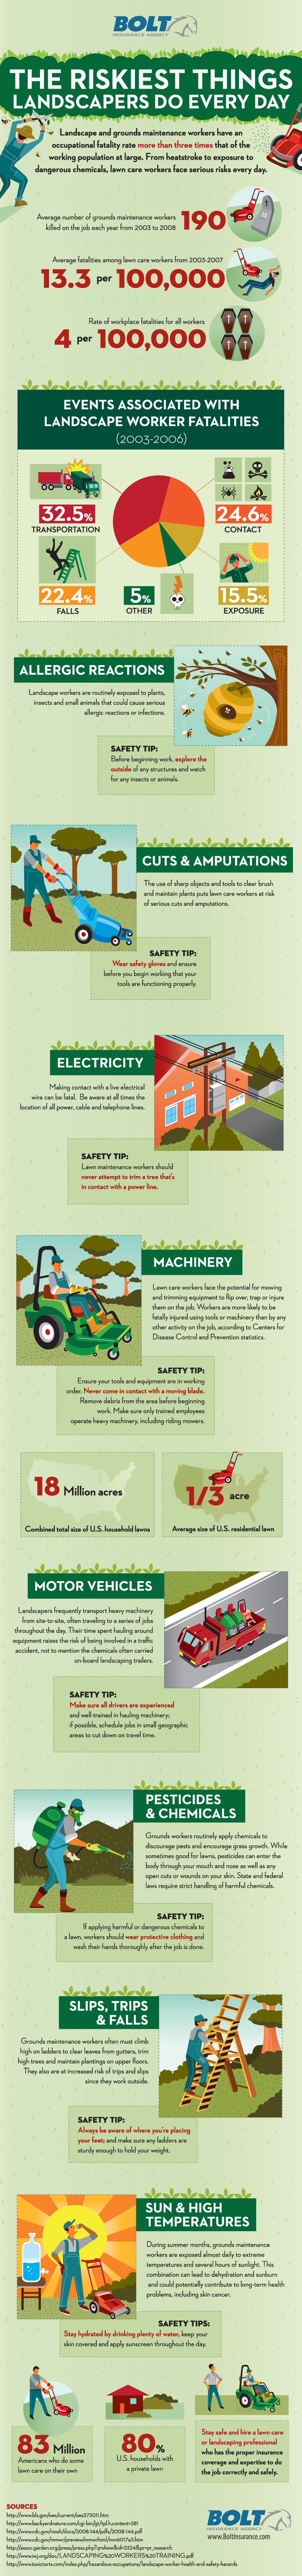 The Riskiest Things Landscapers Do Every Day